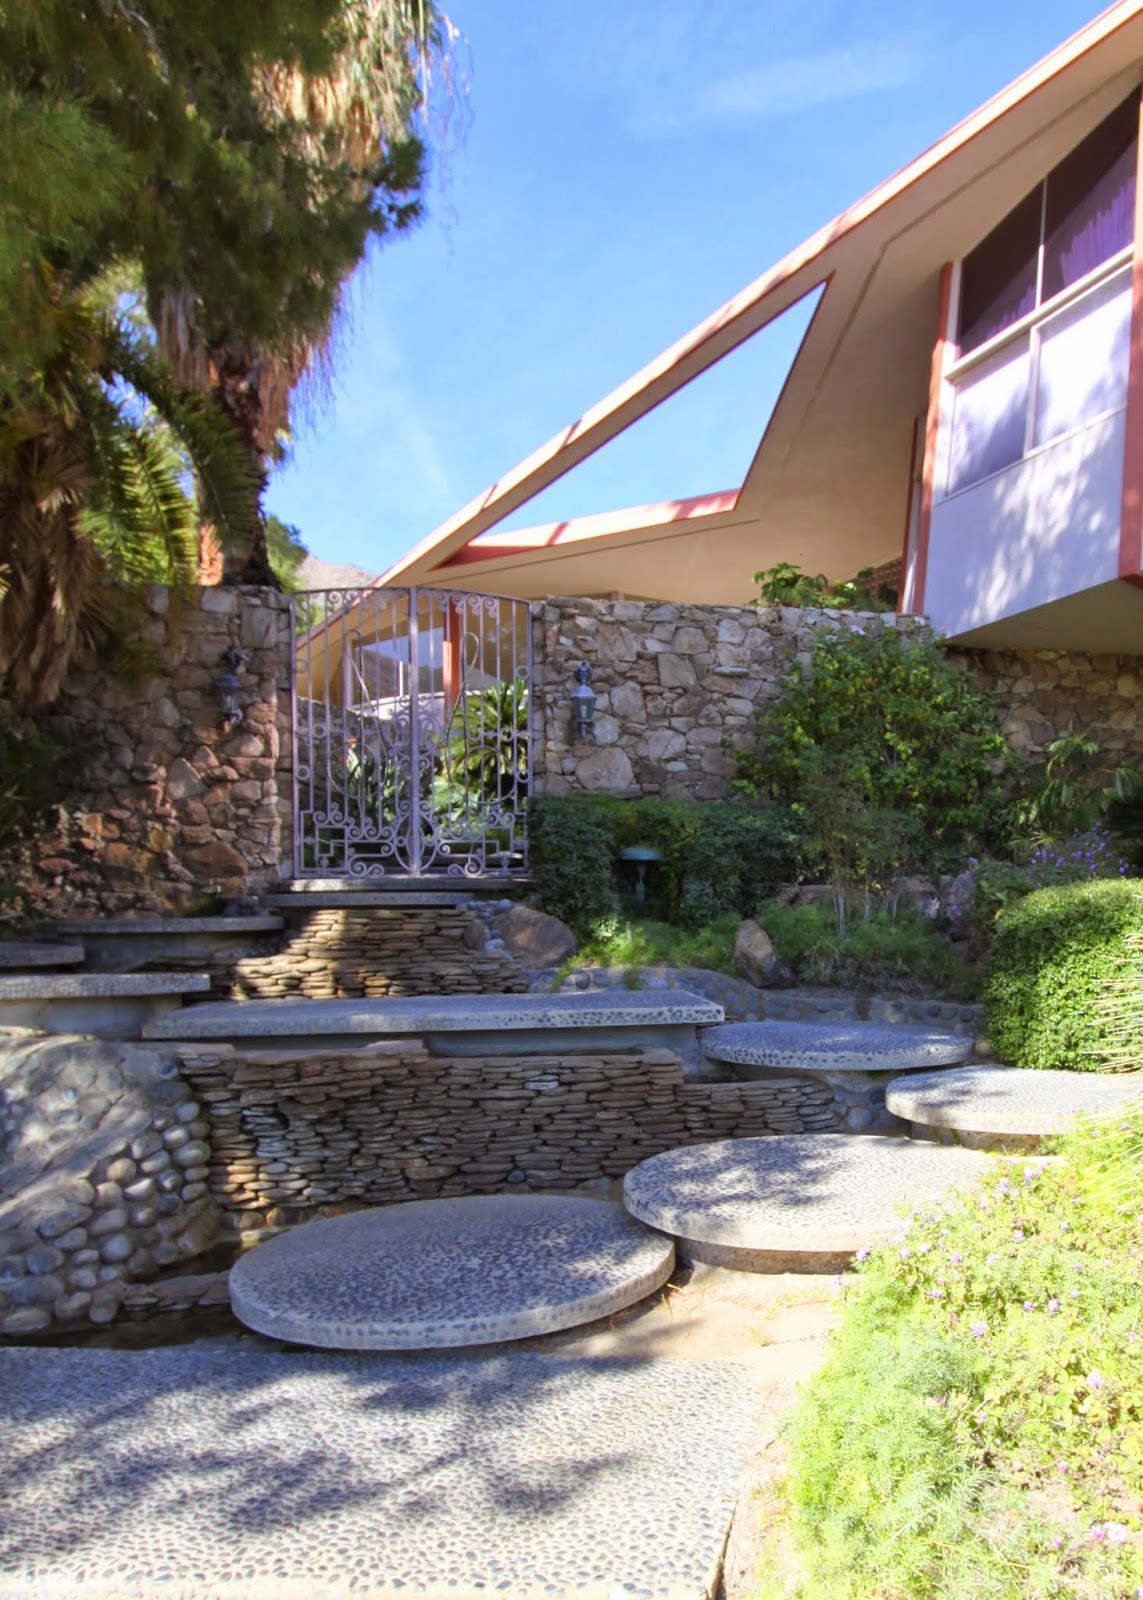 Walking Tour, Vista Las Palmas, Palm Springs, Modernism Week 2014, Elvis Presley Honeymoon Hideaway